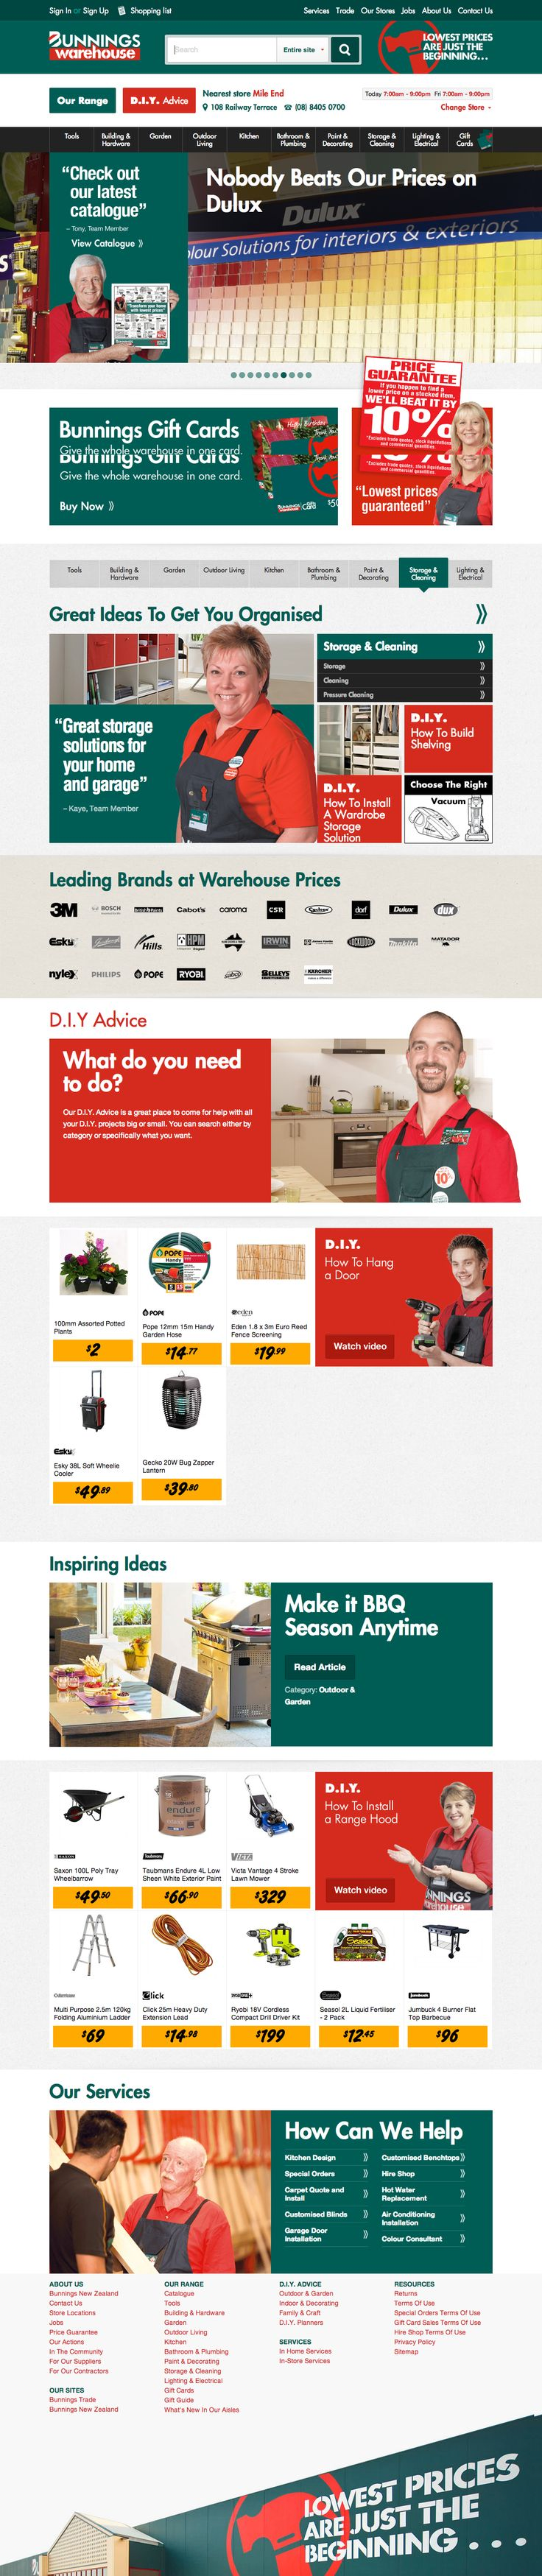 Bunnings Warehouse - Lowest prices are just the beginning   Bunnings Warehouse